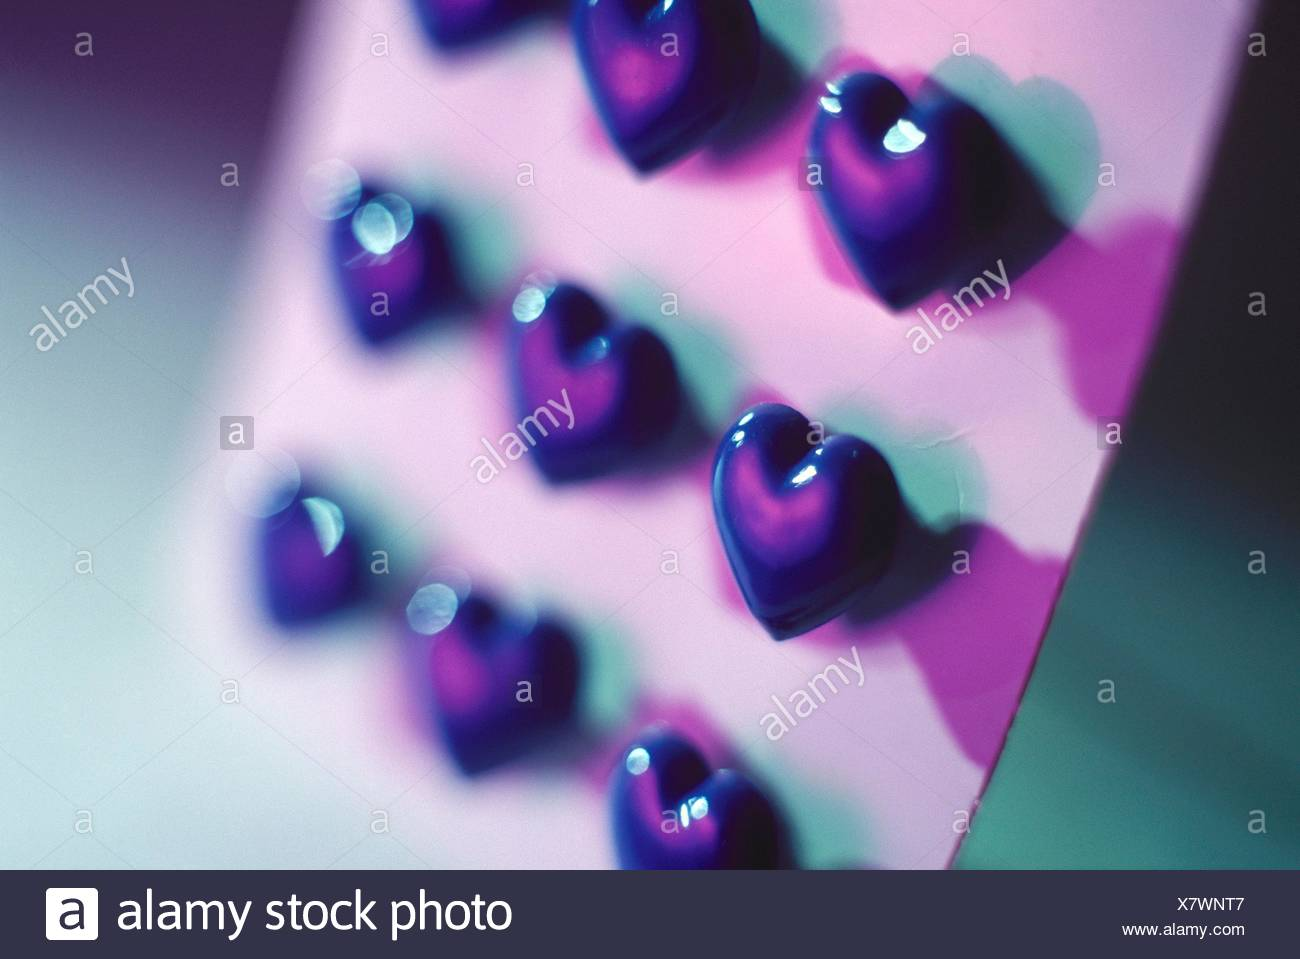 Heart shaped buttons Stock Photo: 280234423 - Alamy